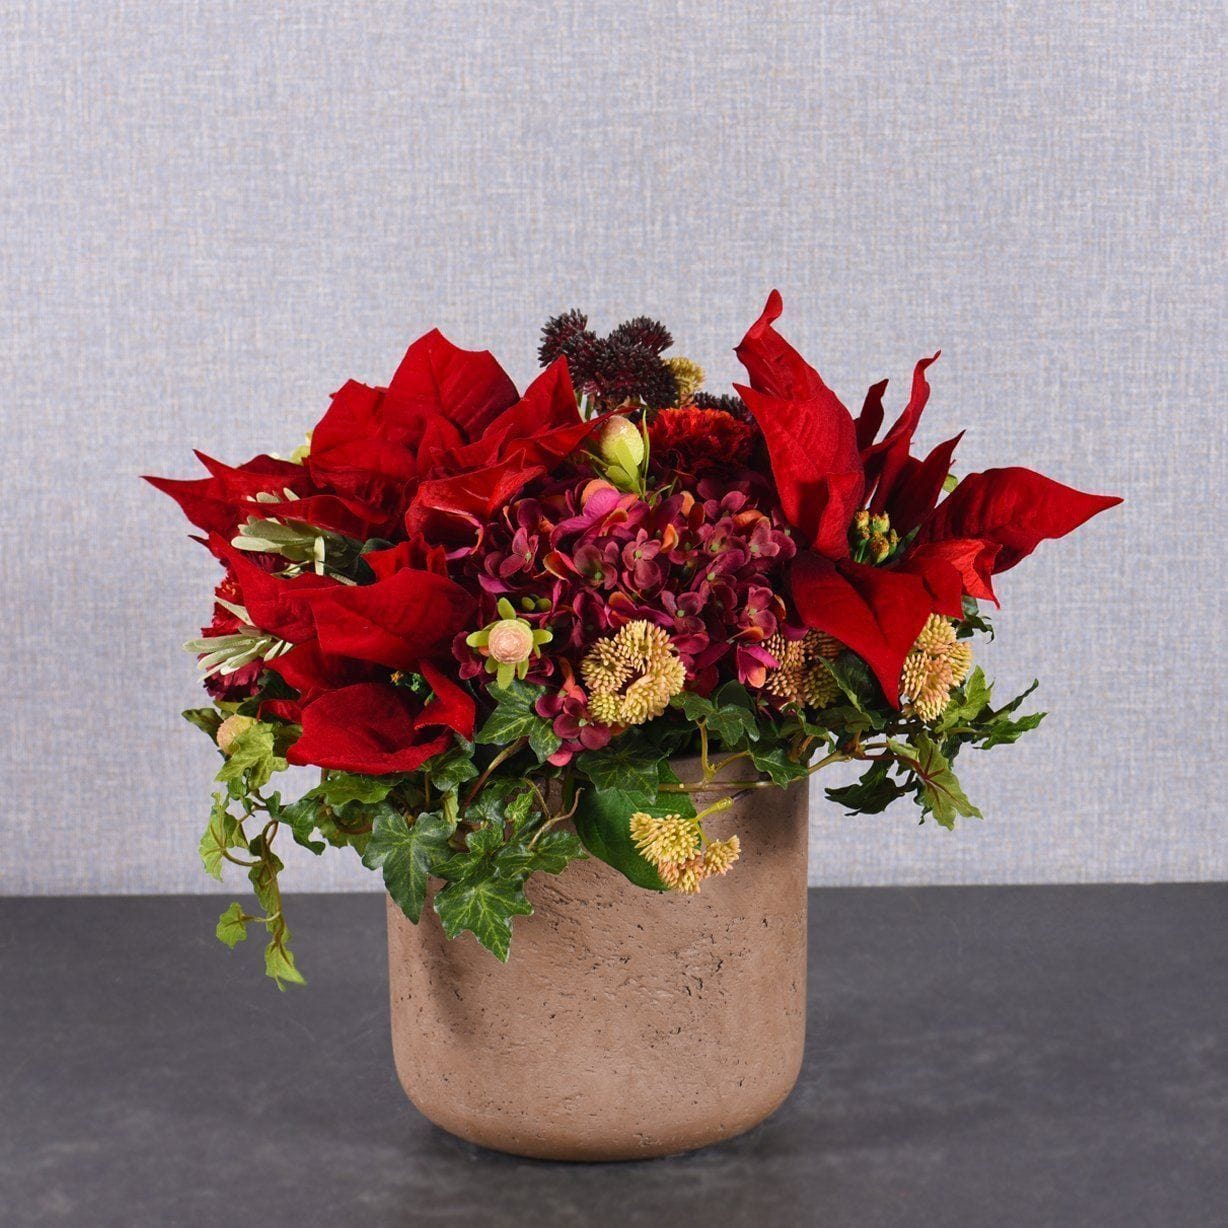 Artificial Christmas Flowers.Red Christmas Bouquet